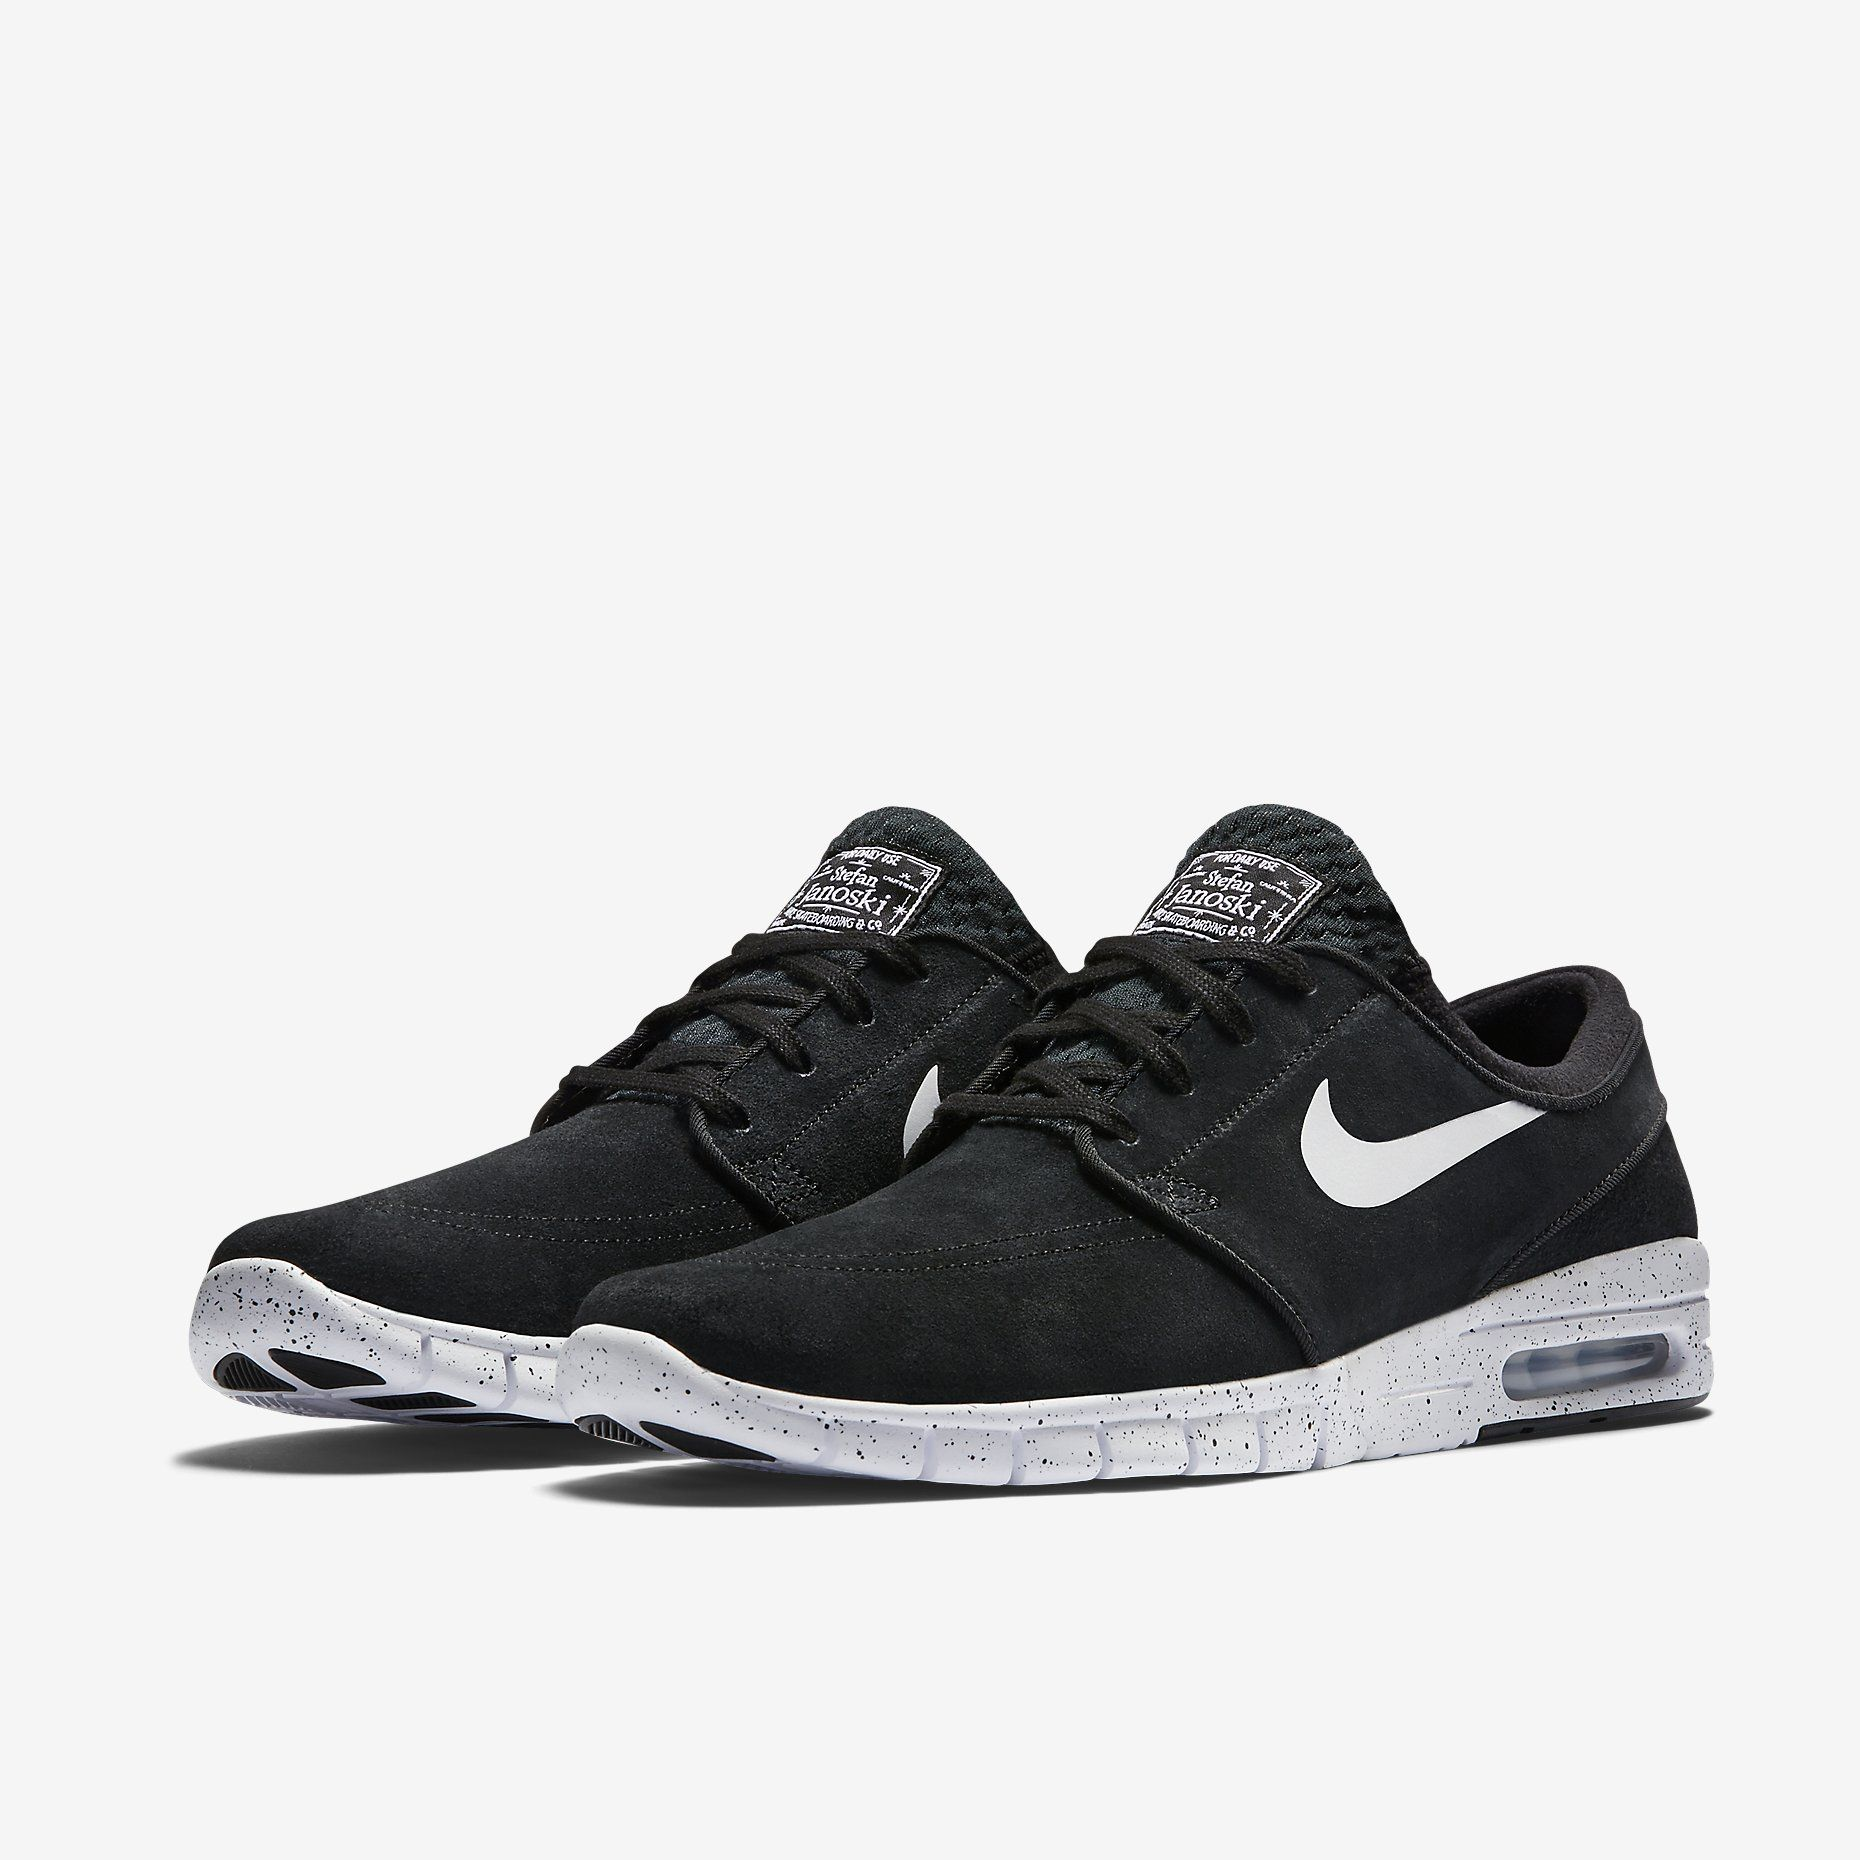 cheap for discount 2bede 8752b Nike SB Stefan Janoski Max Suede Unisex Skateboarding Shoe (Mens Sizing).  Nike Store